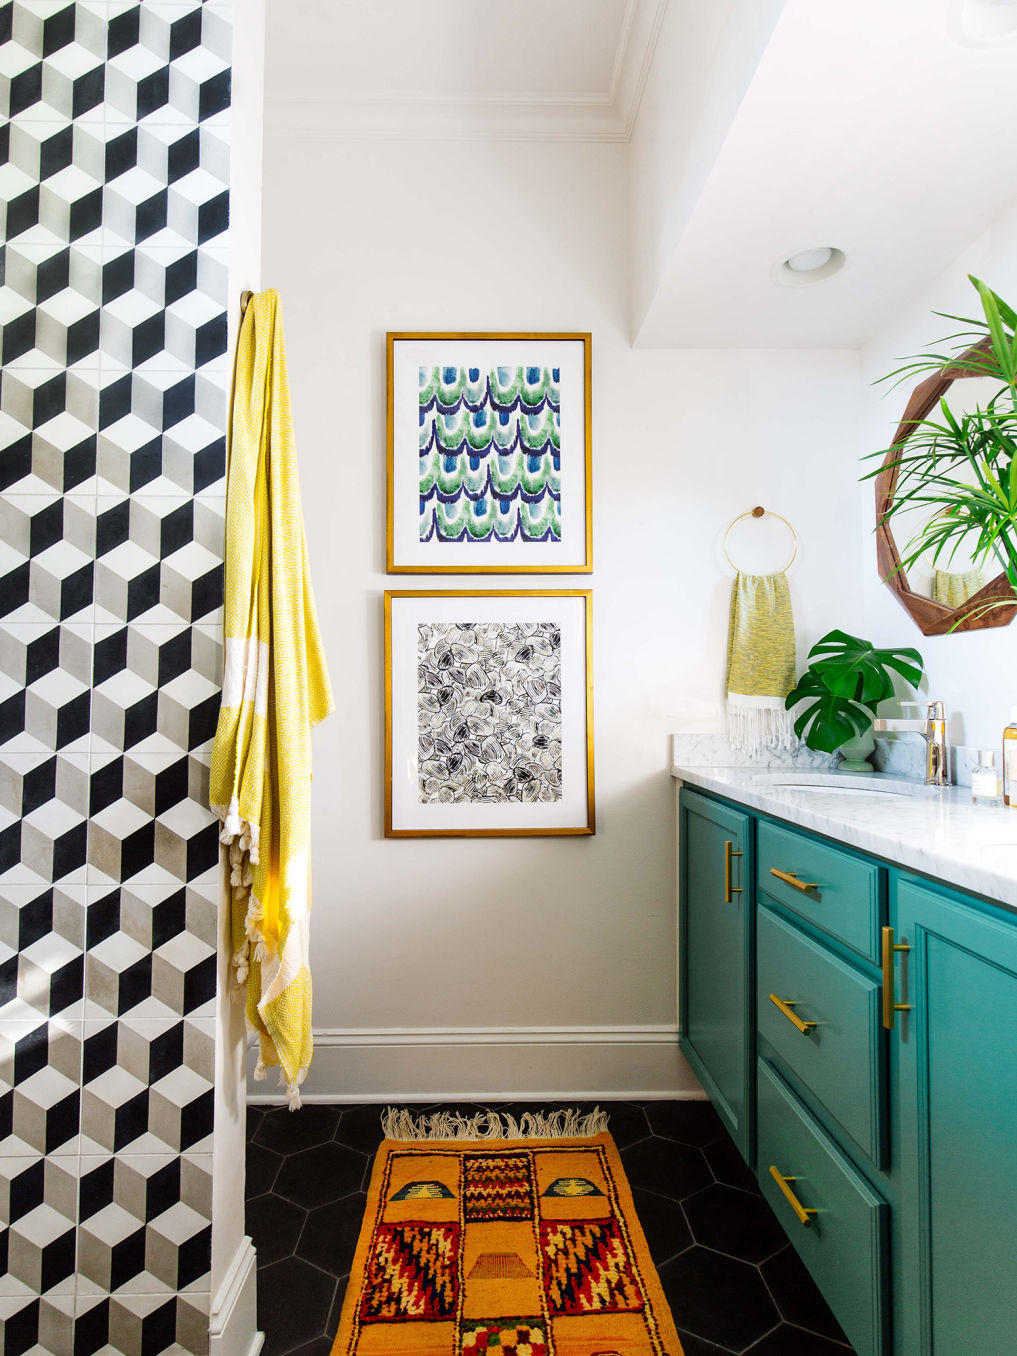 Graphic black and white tile in this small bathroom with turquoise vanity #bathroom #tile #blackandwhite #bathroomvanity #bathroomdecor